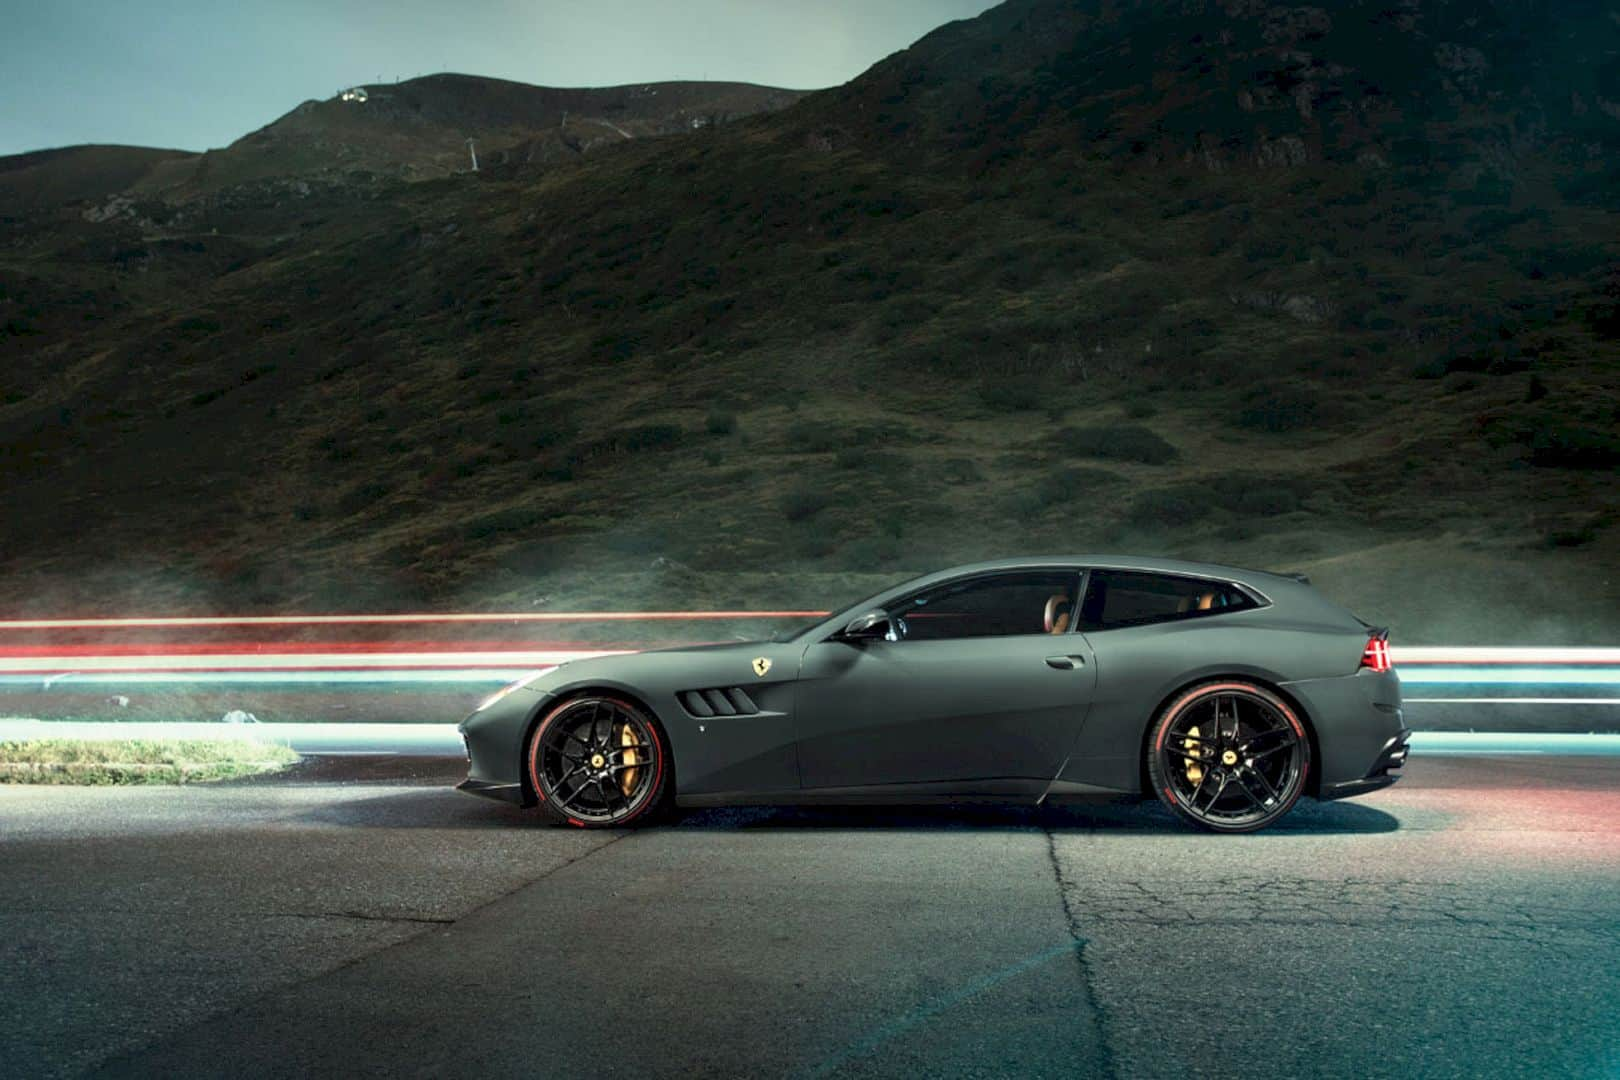 Ferrari GTC4 Lusso by Novitec: The Performance En Vogue